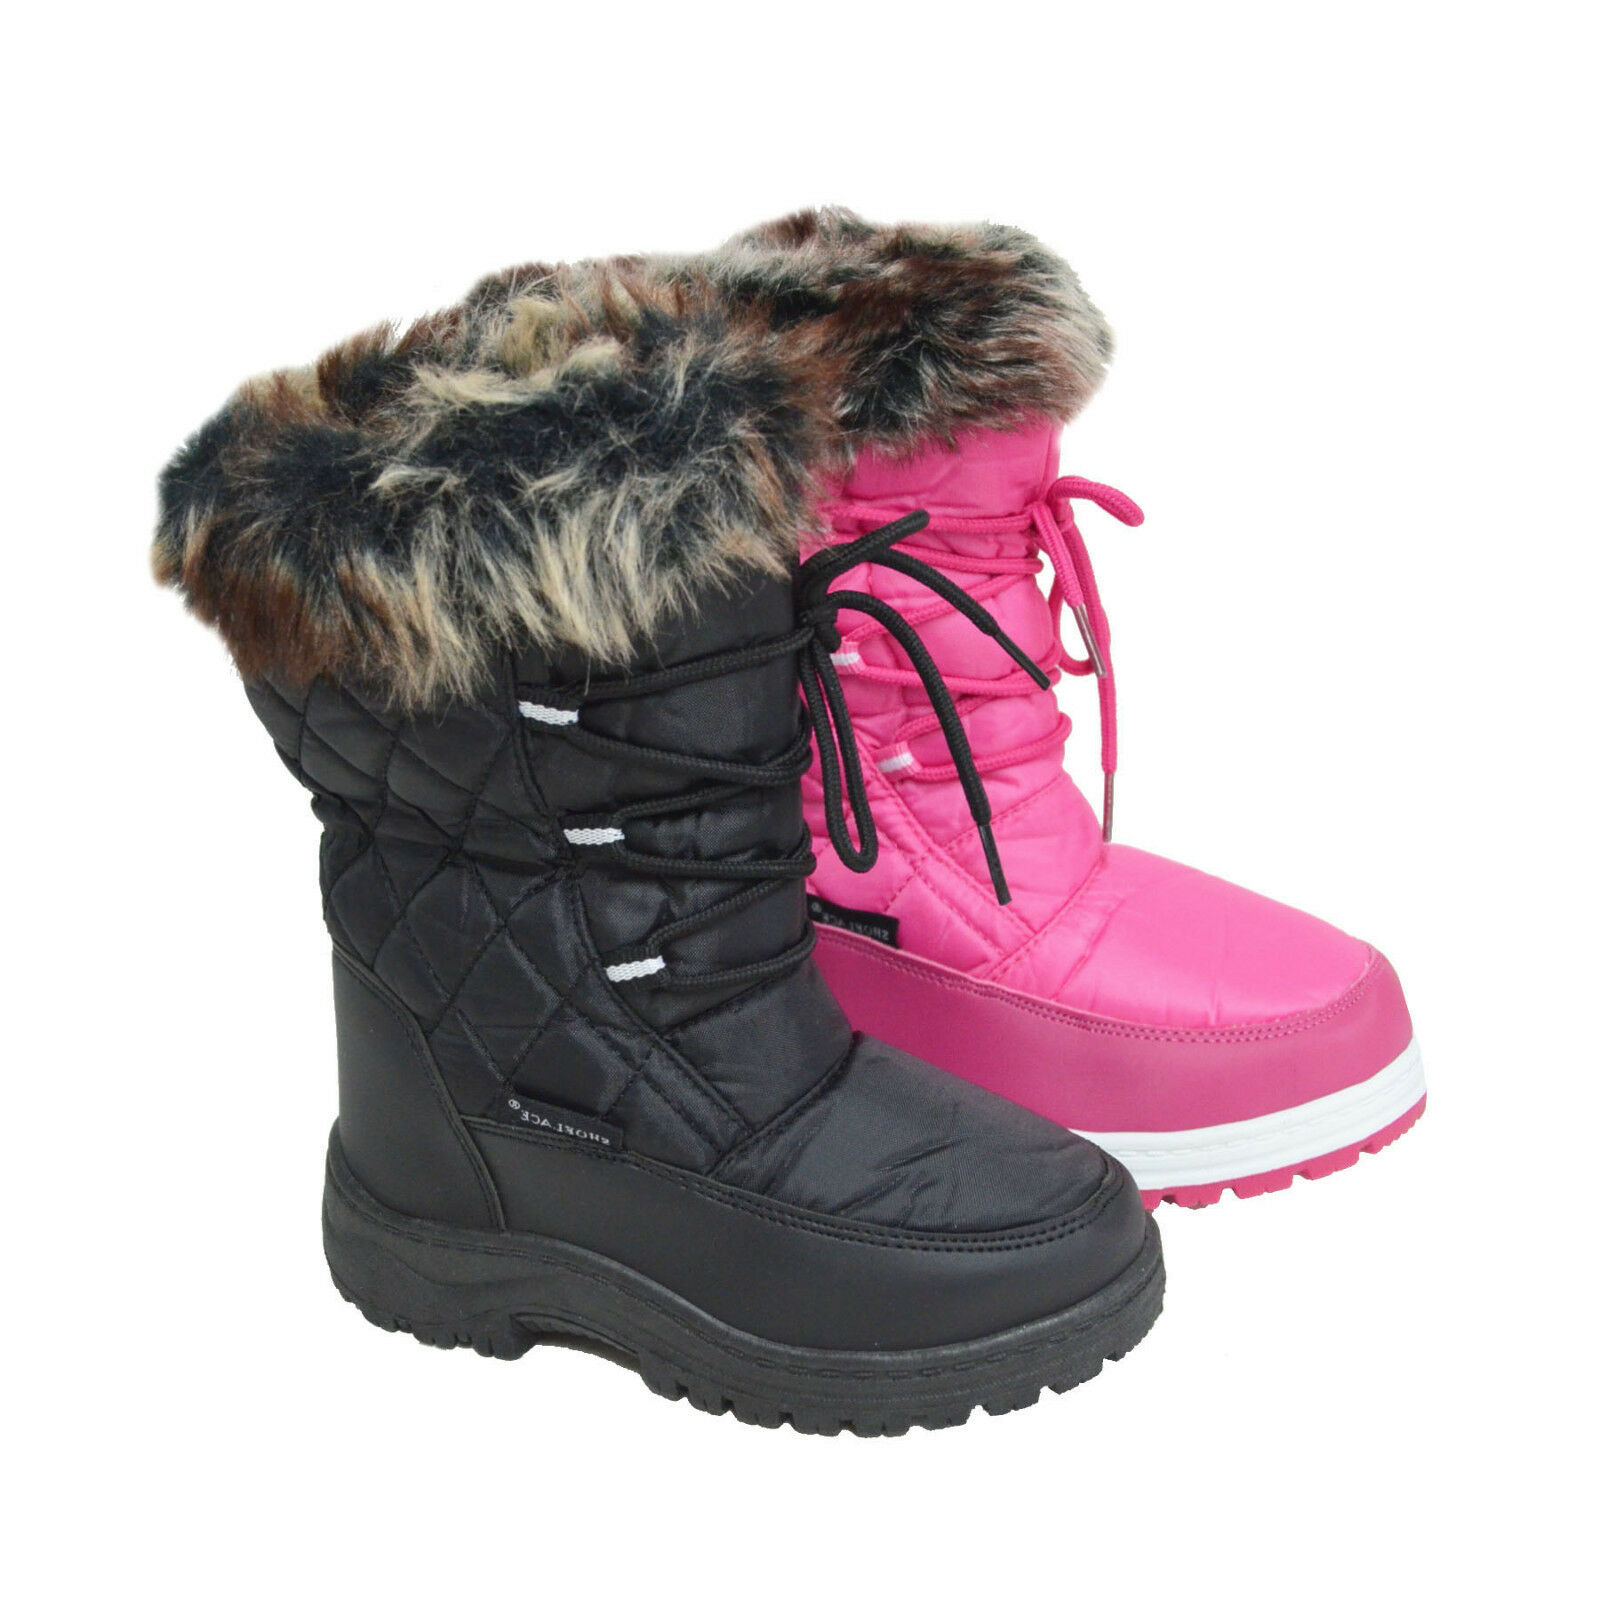 Baby-01 Kid/'s Water Resistant Insulated Winter Snow Boots Fleece Lining Snow